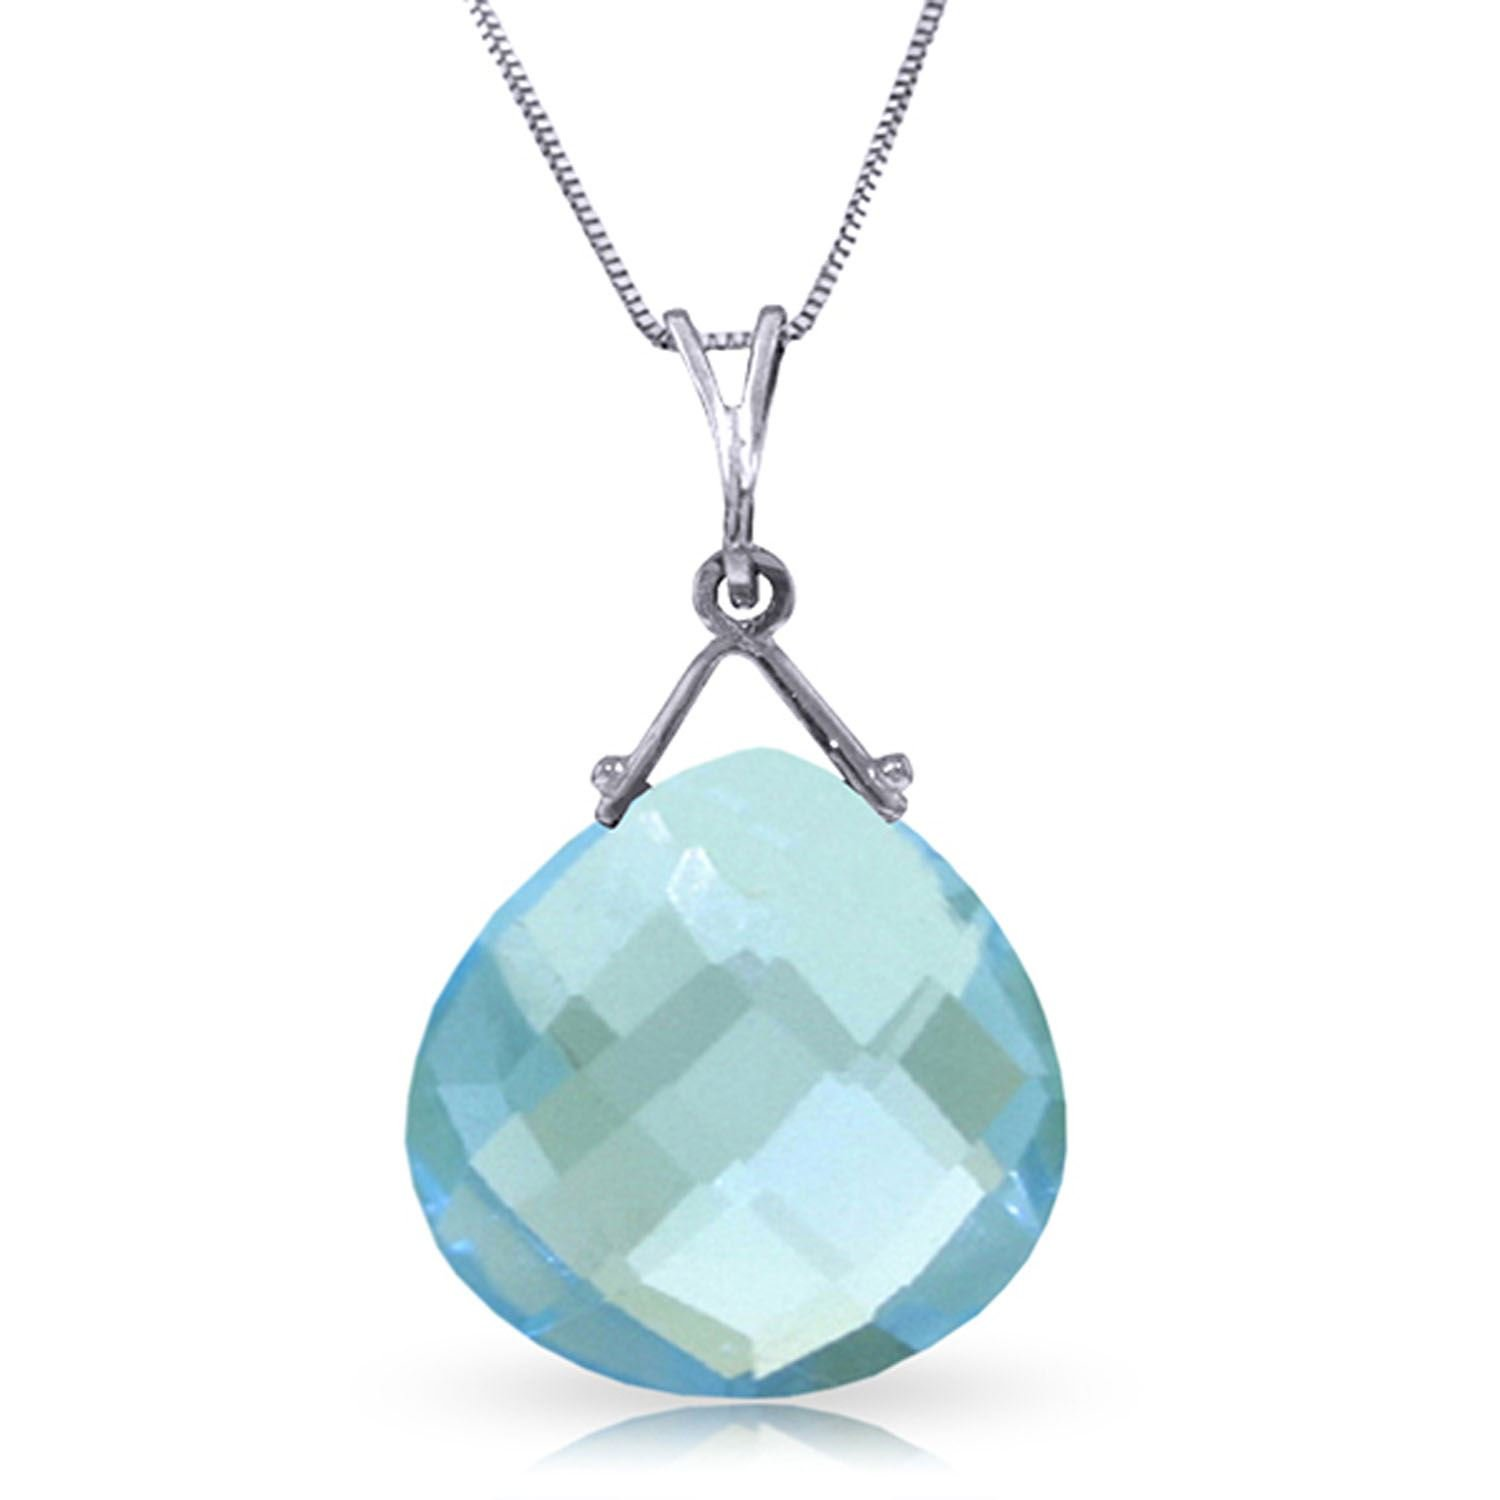 ALARRI 8.5 Carat 14K Solid White Gold Instrument Of A Giver Blue Topaz Necklace with 24 Inch Chain Length